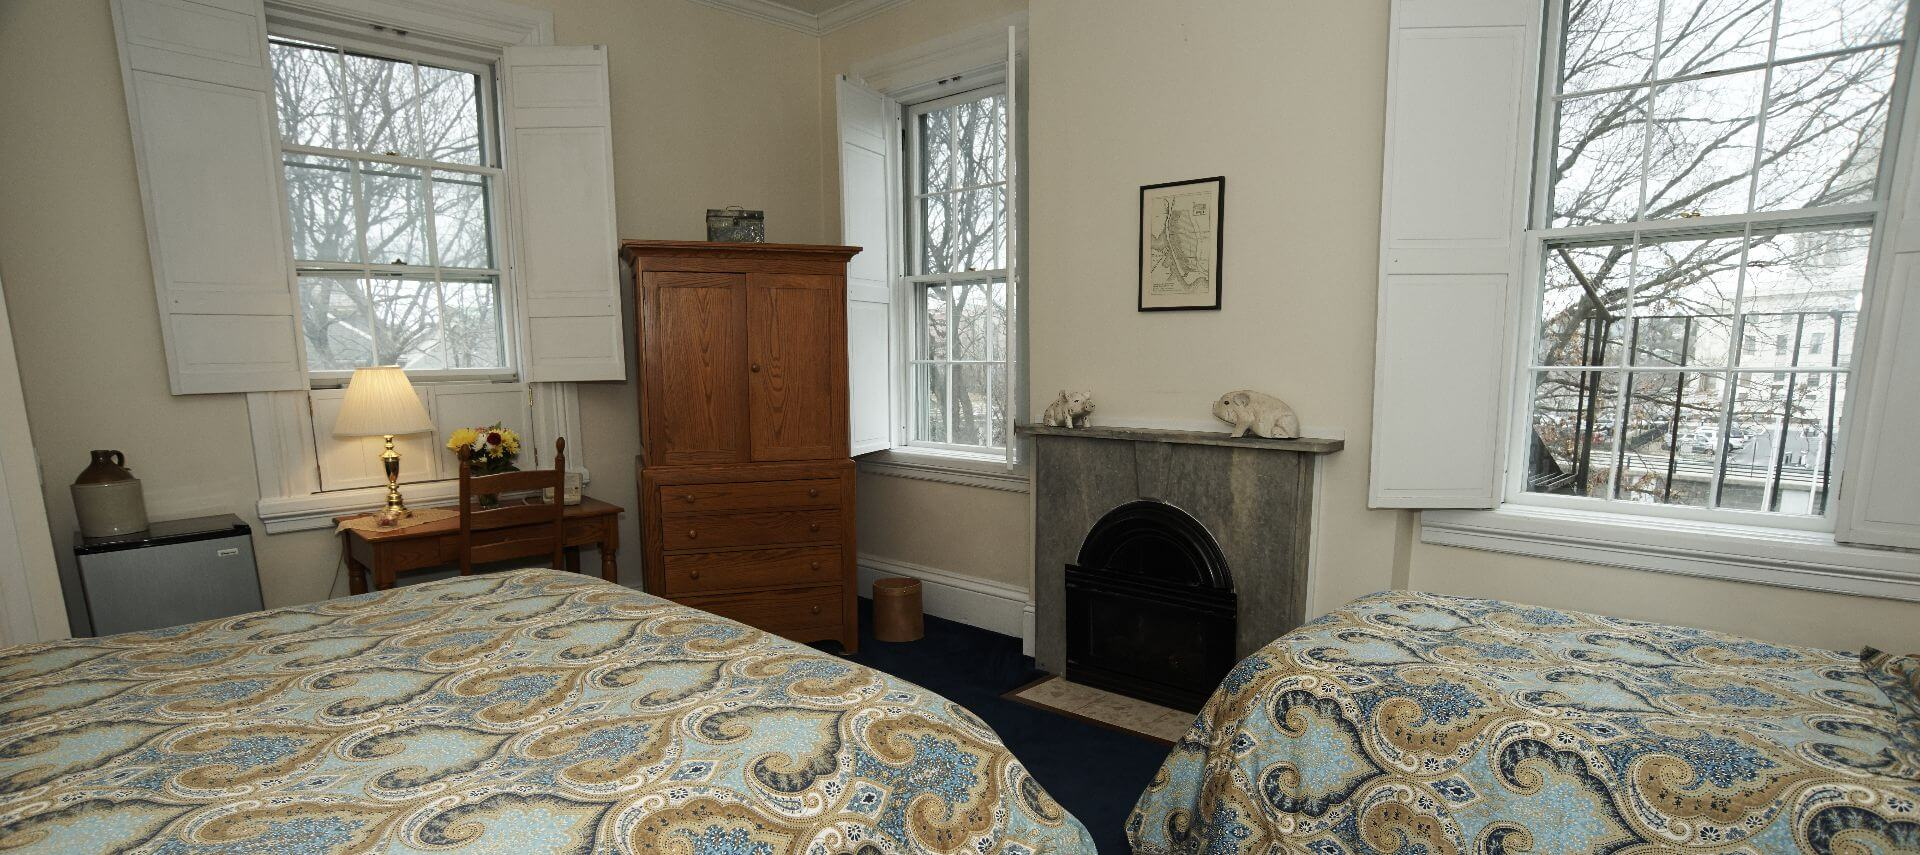 Bedroom with a twin and king bed, a fireplace, a window and a wooden armoire.